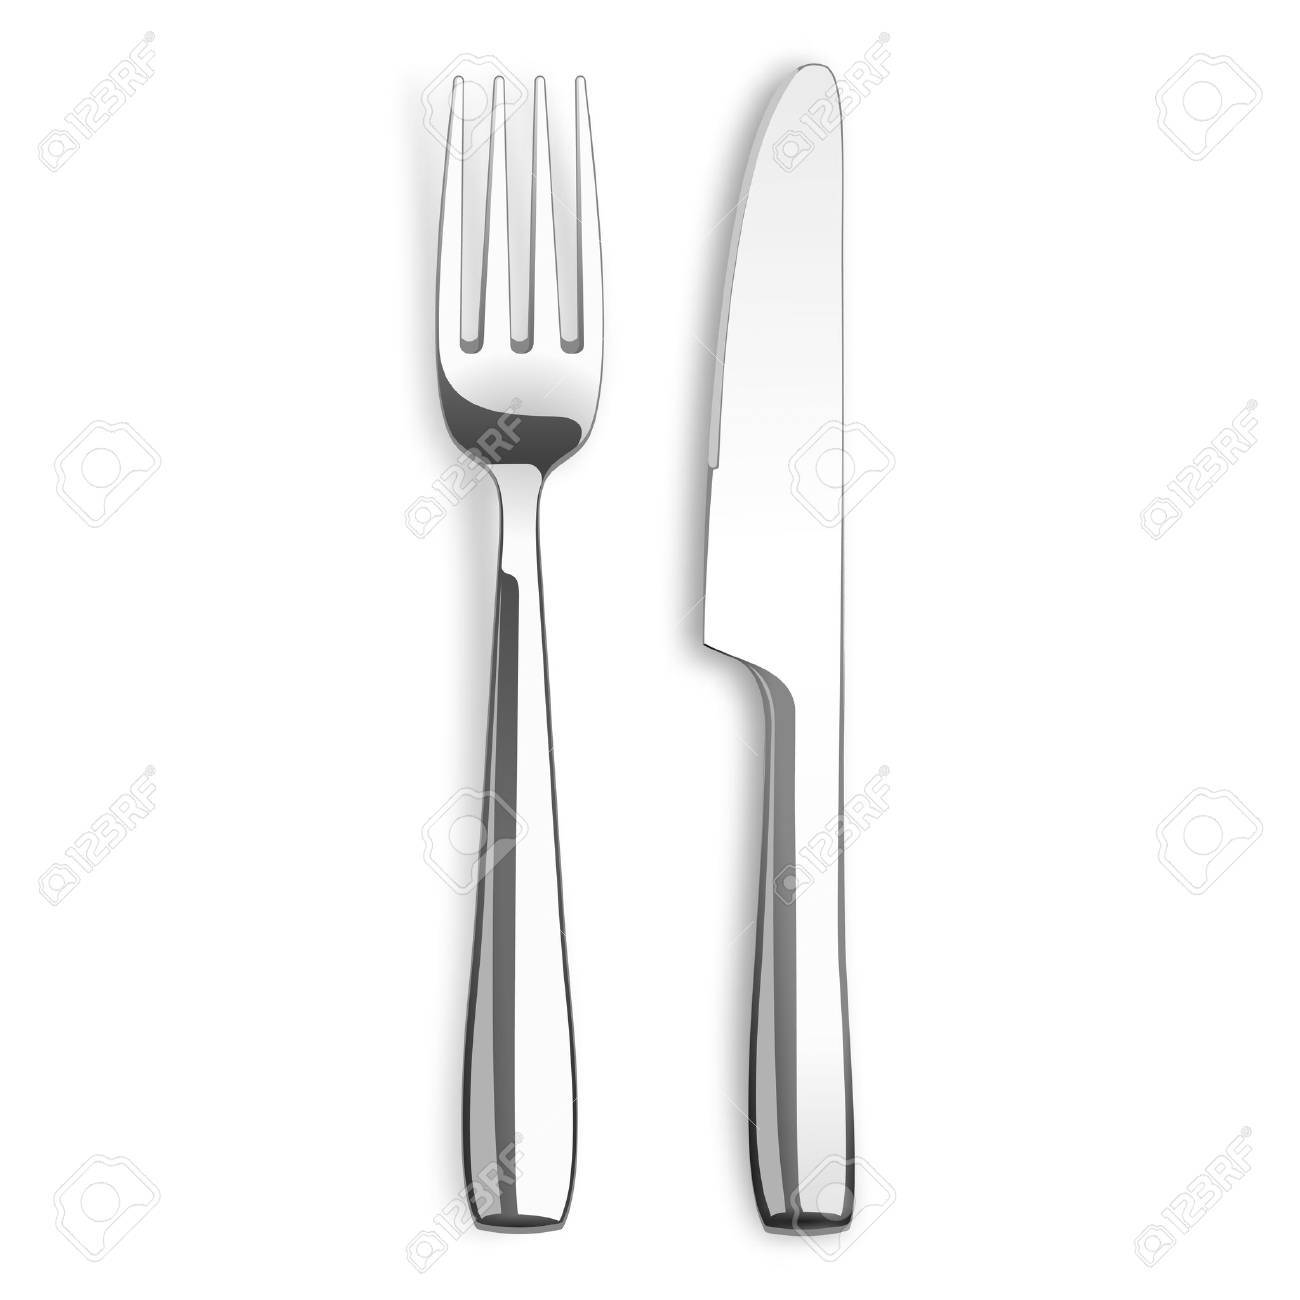 Stainless steel knife and fork on the white background. - 56044725